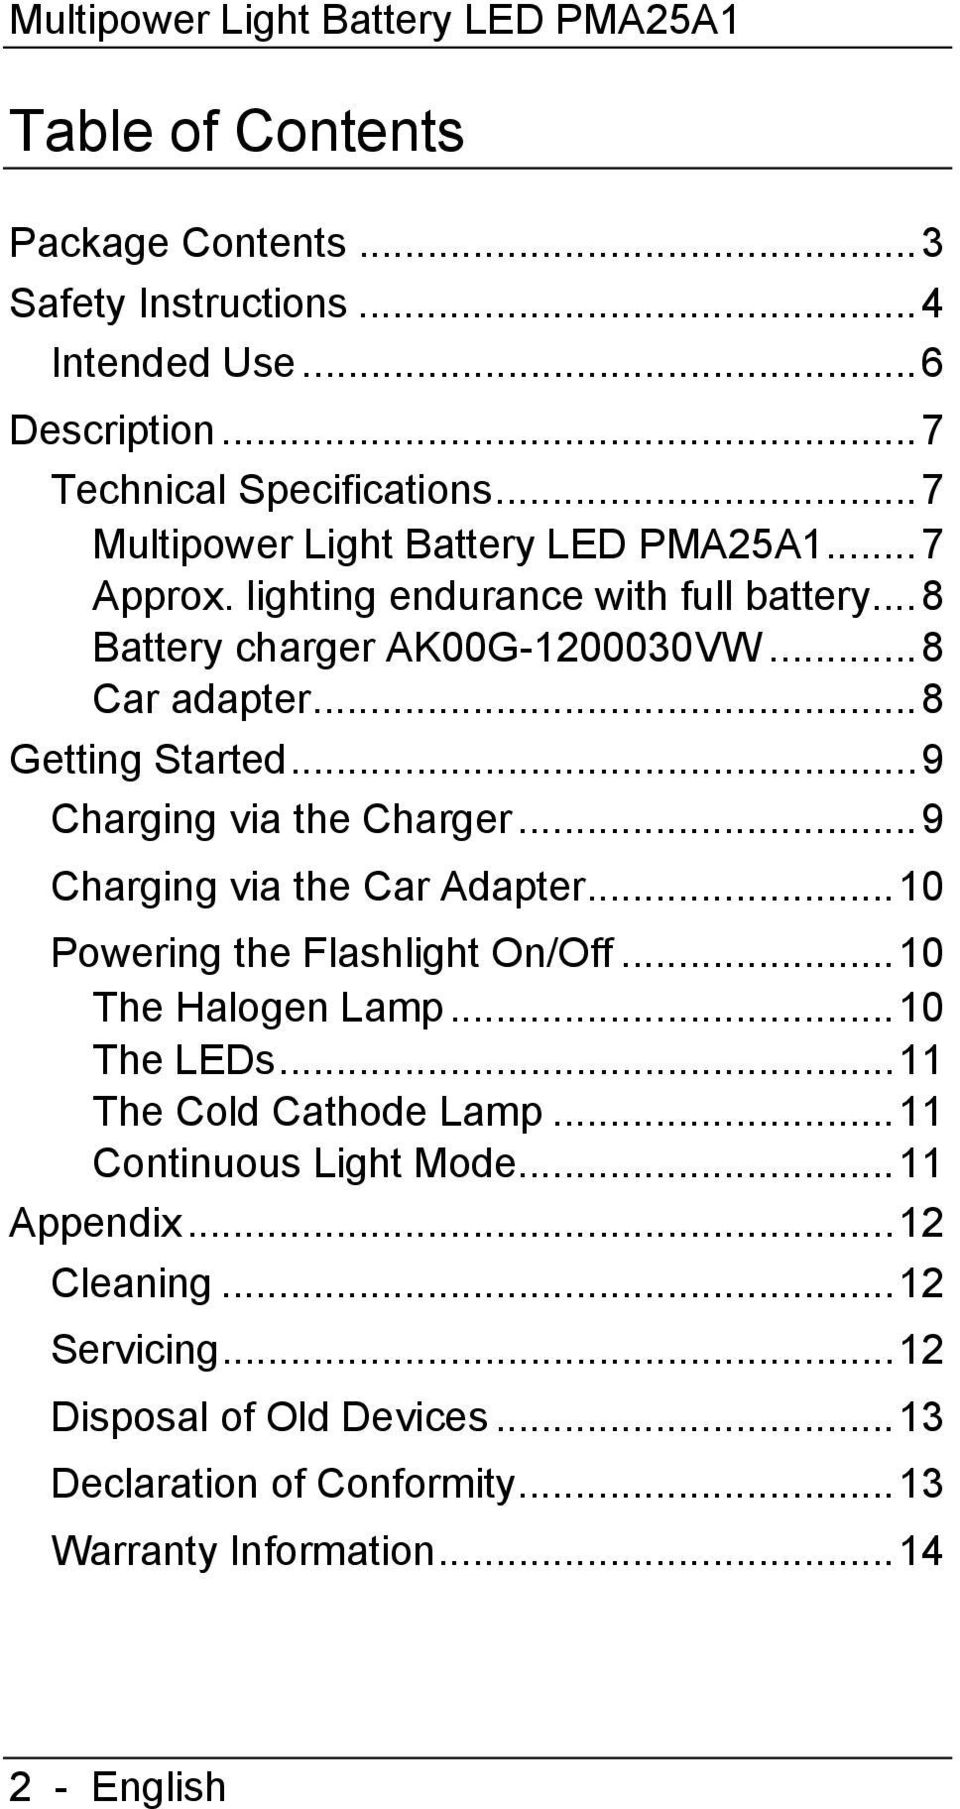 ..9 Charging via the Charger...9 Charging via the Car Adapter...10 Powering the Flashlight On/Off...10 The Halogen Lamp...10 The LEDs...11 The Cold Cathode Lamp.